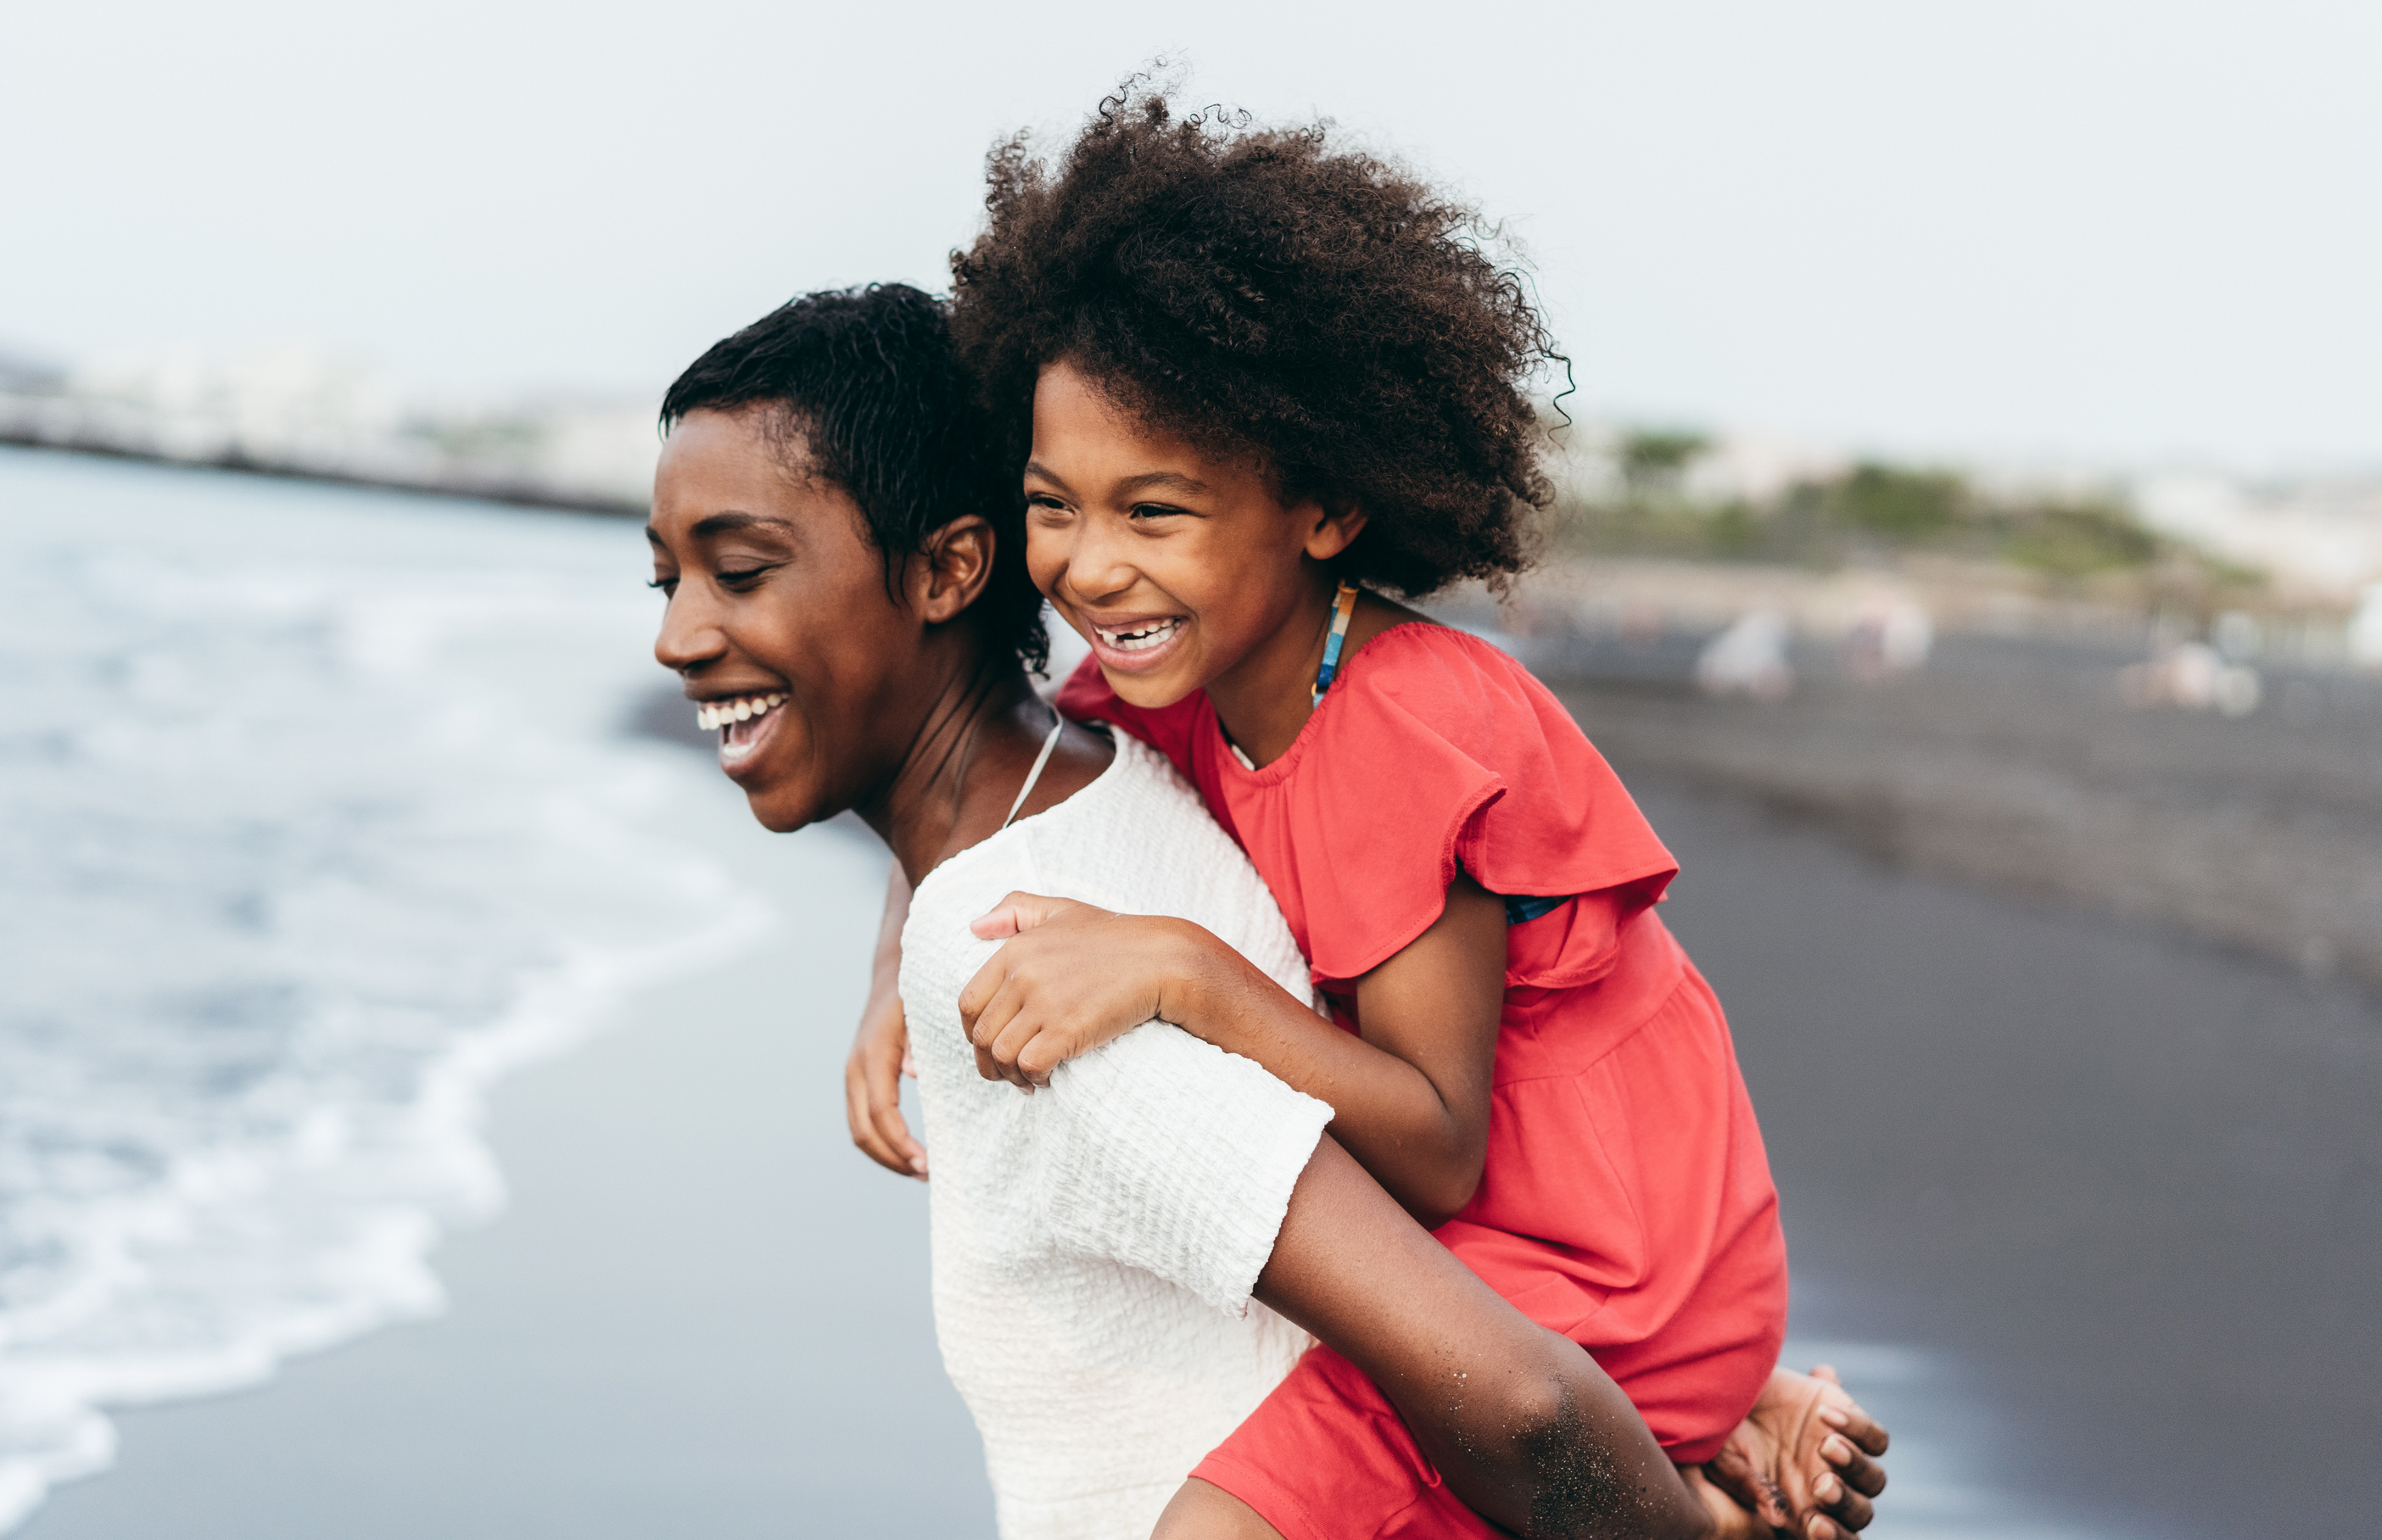 mother and daughter laughing on a beach